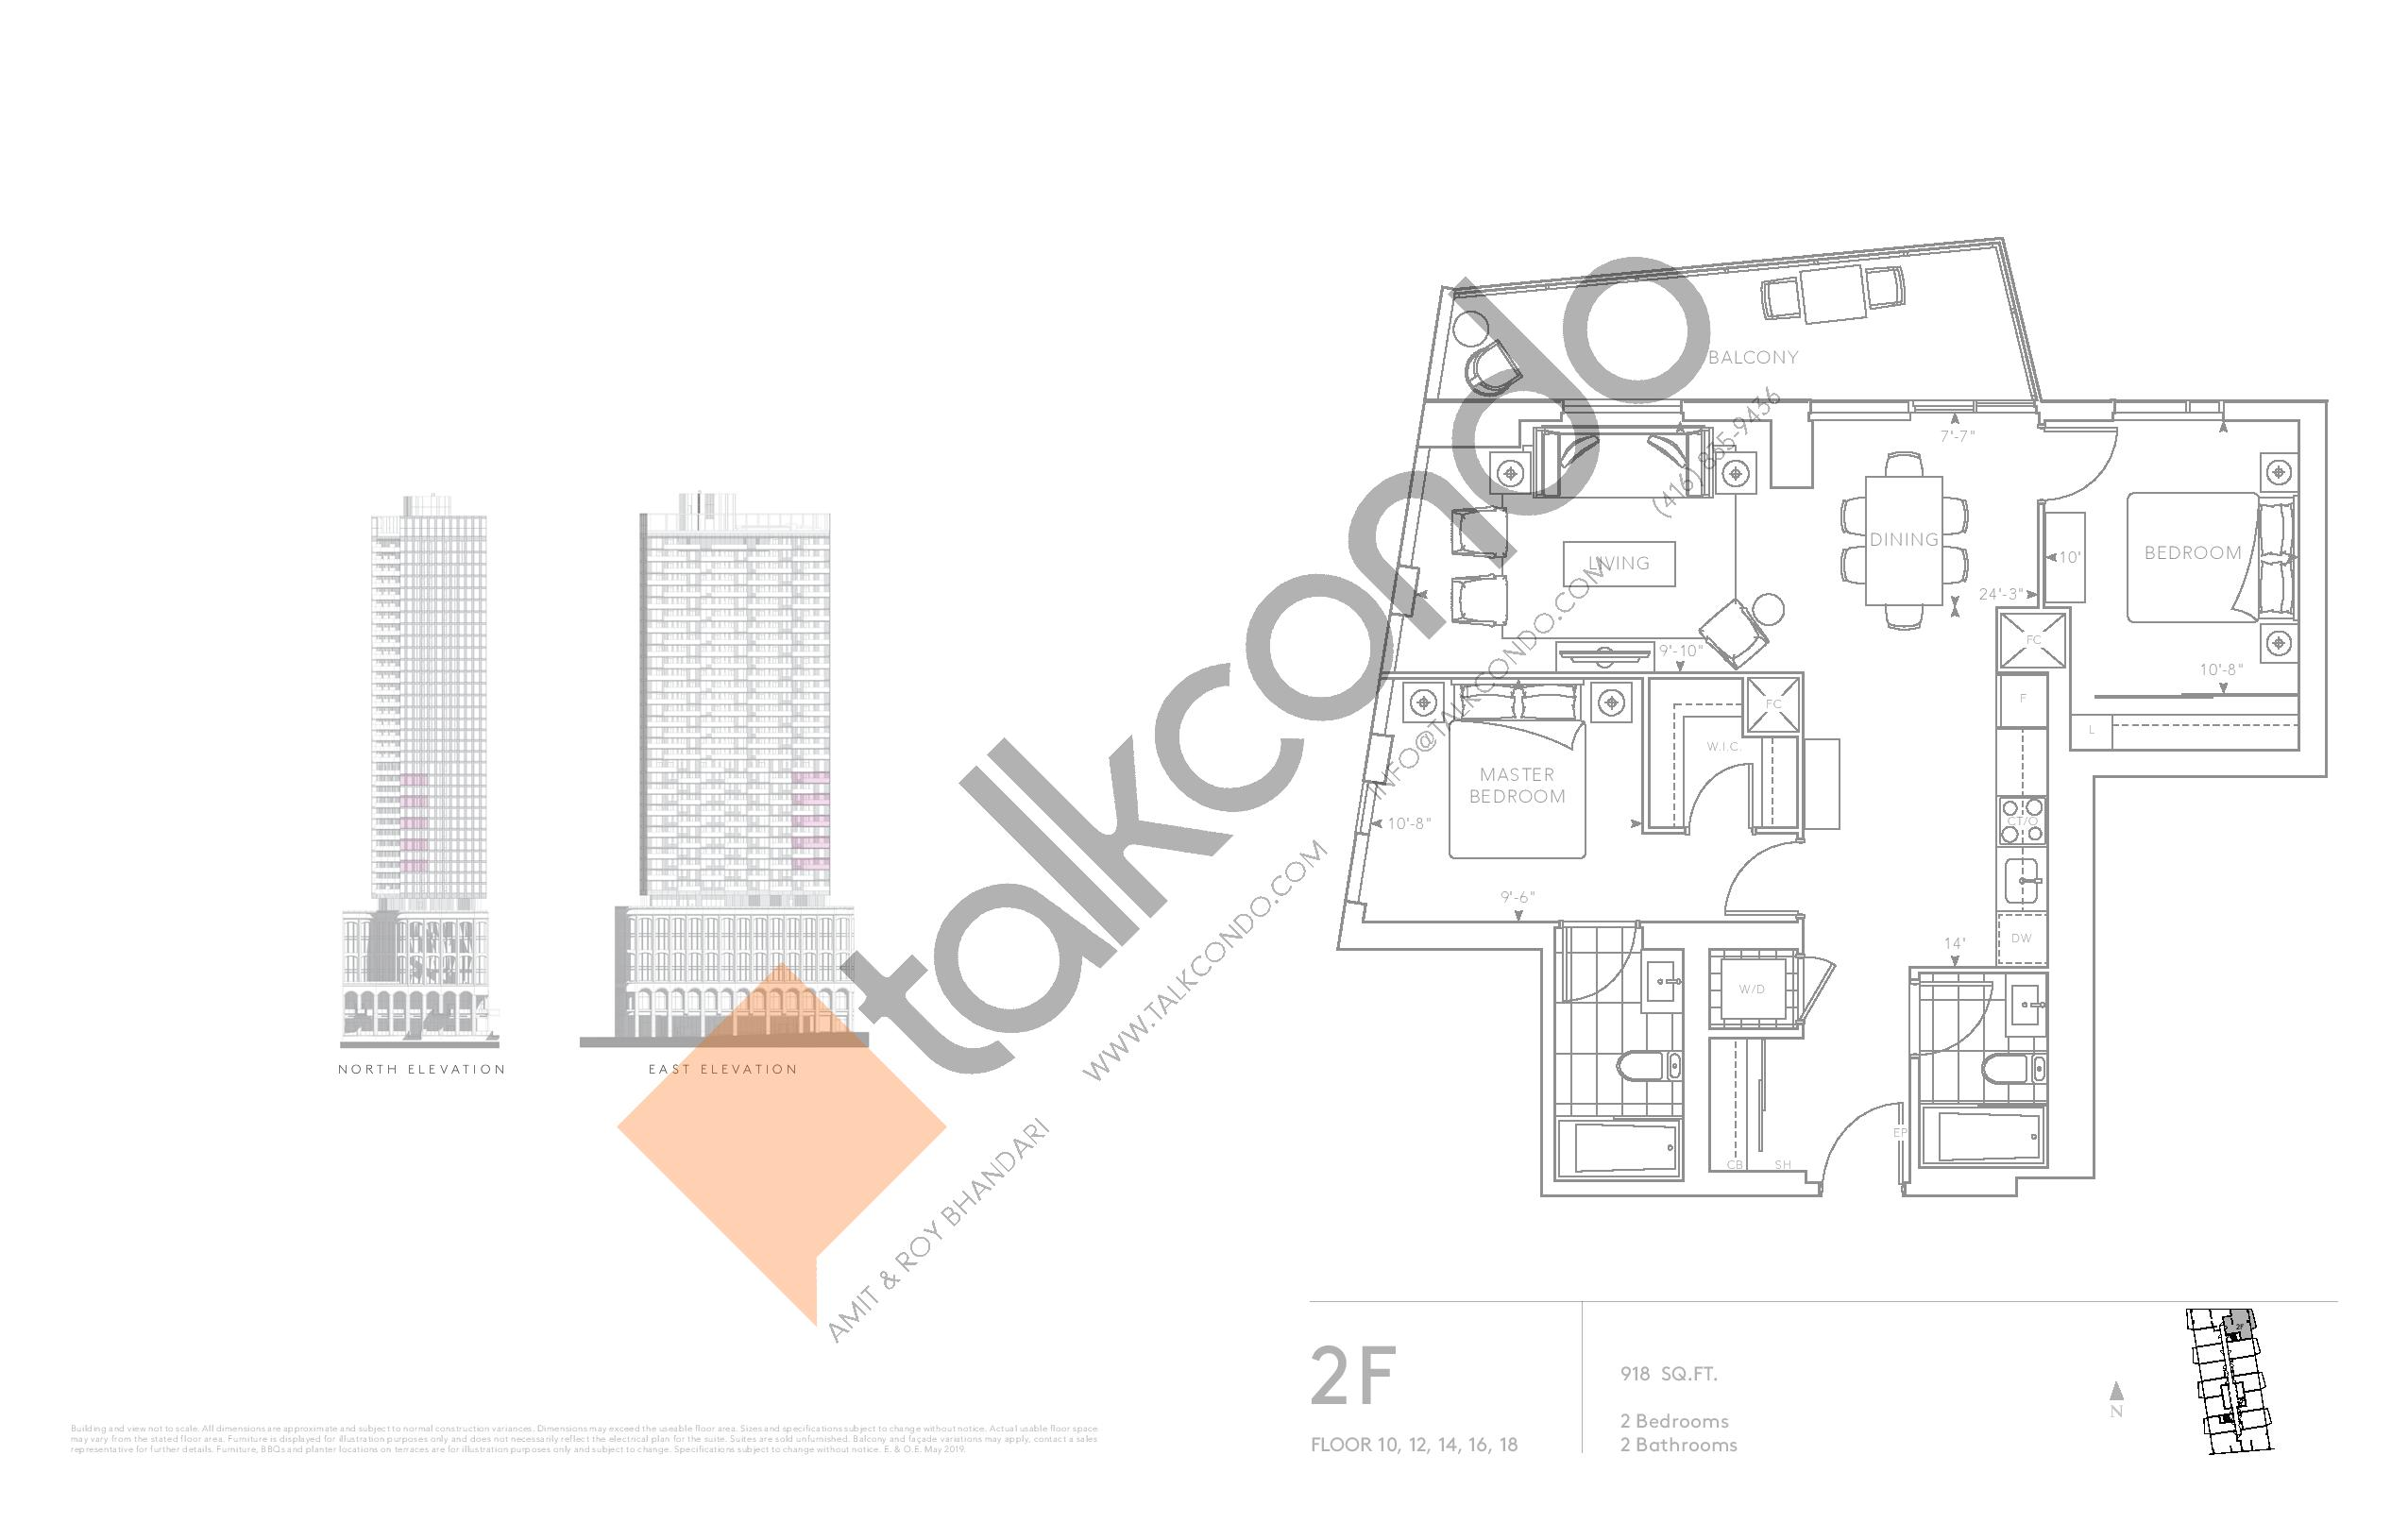 2F - Classic Series Floor Plan at Tridel at The Well Condos - 918 sq.ft